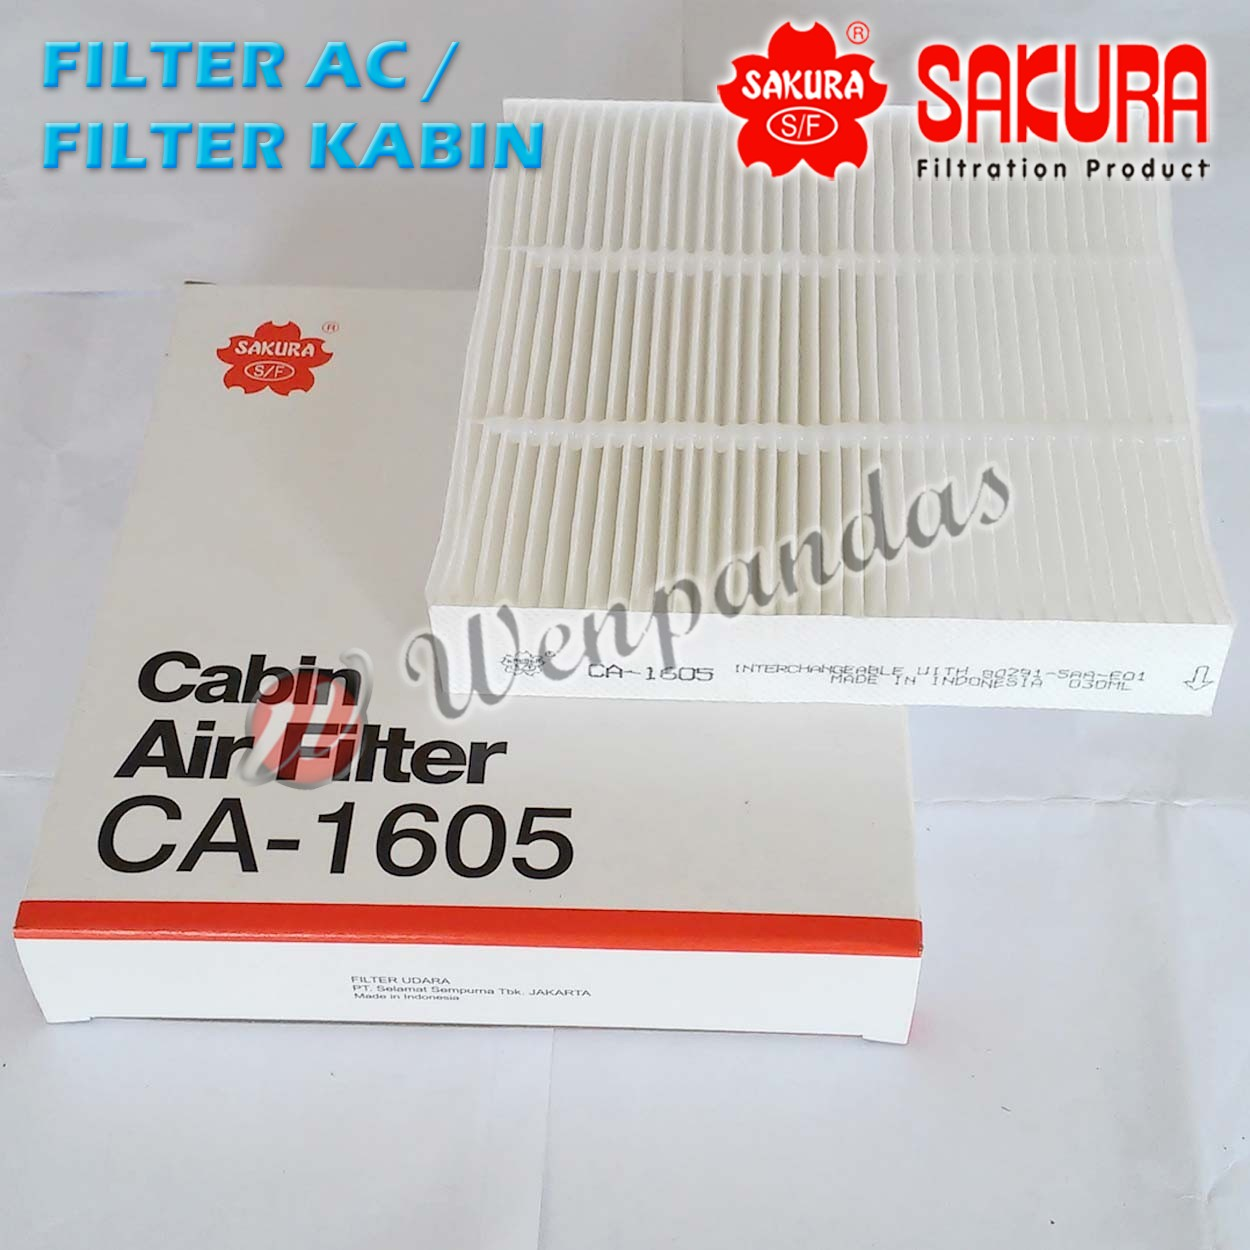 Filter AC Cabin Honda JAZZ TAHUN < 2007, CITY < 2008 Sakura CA-1605